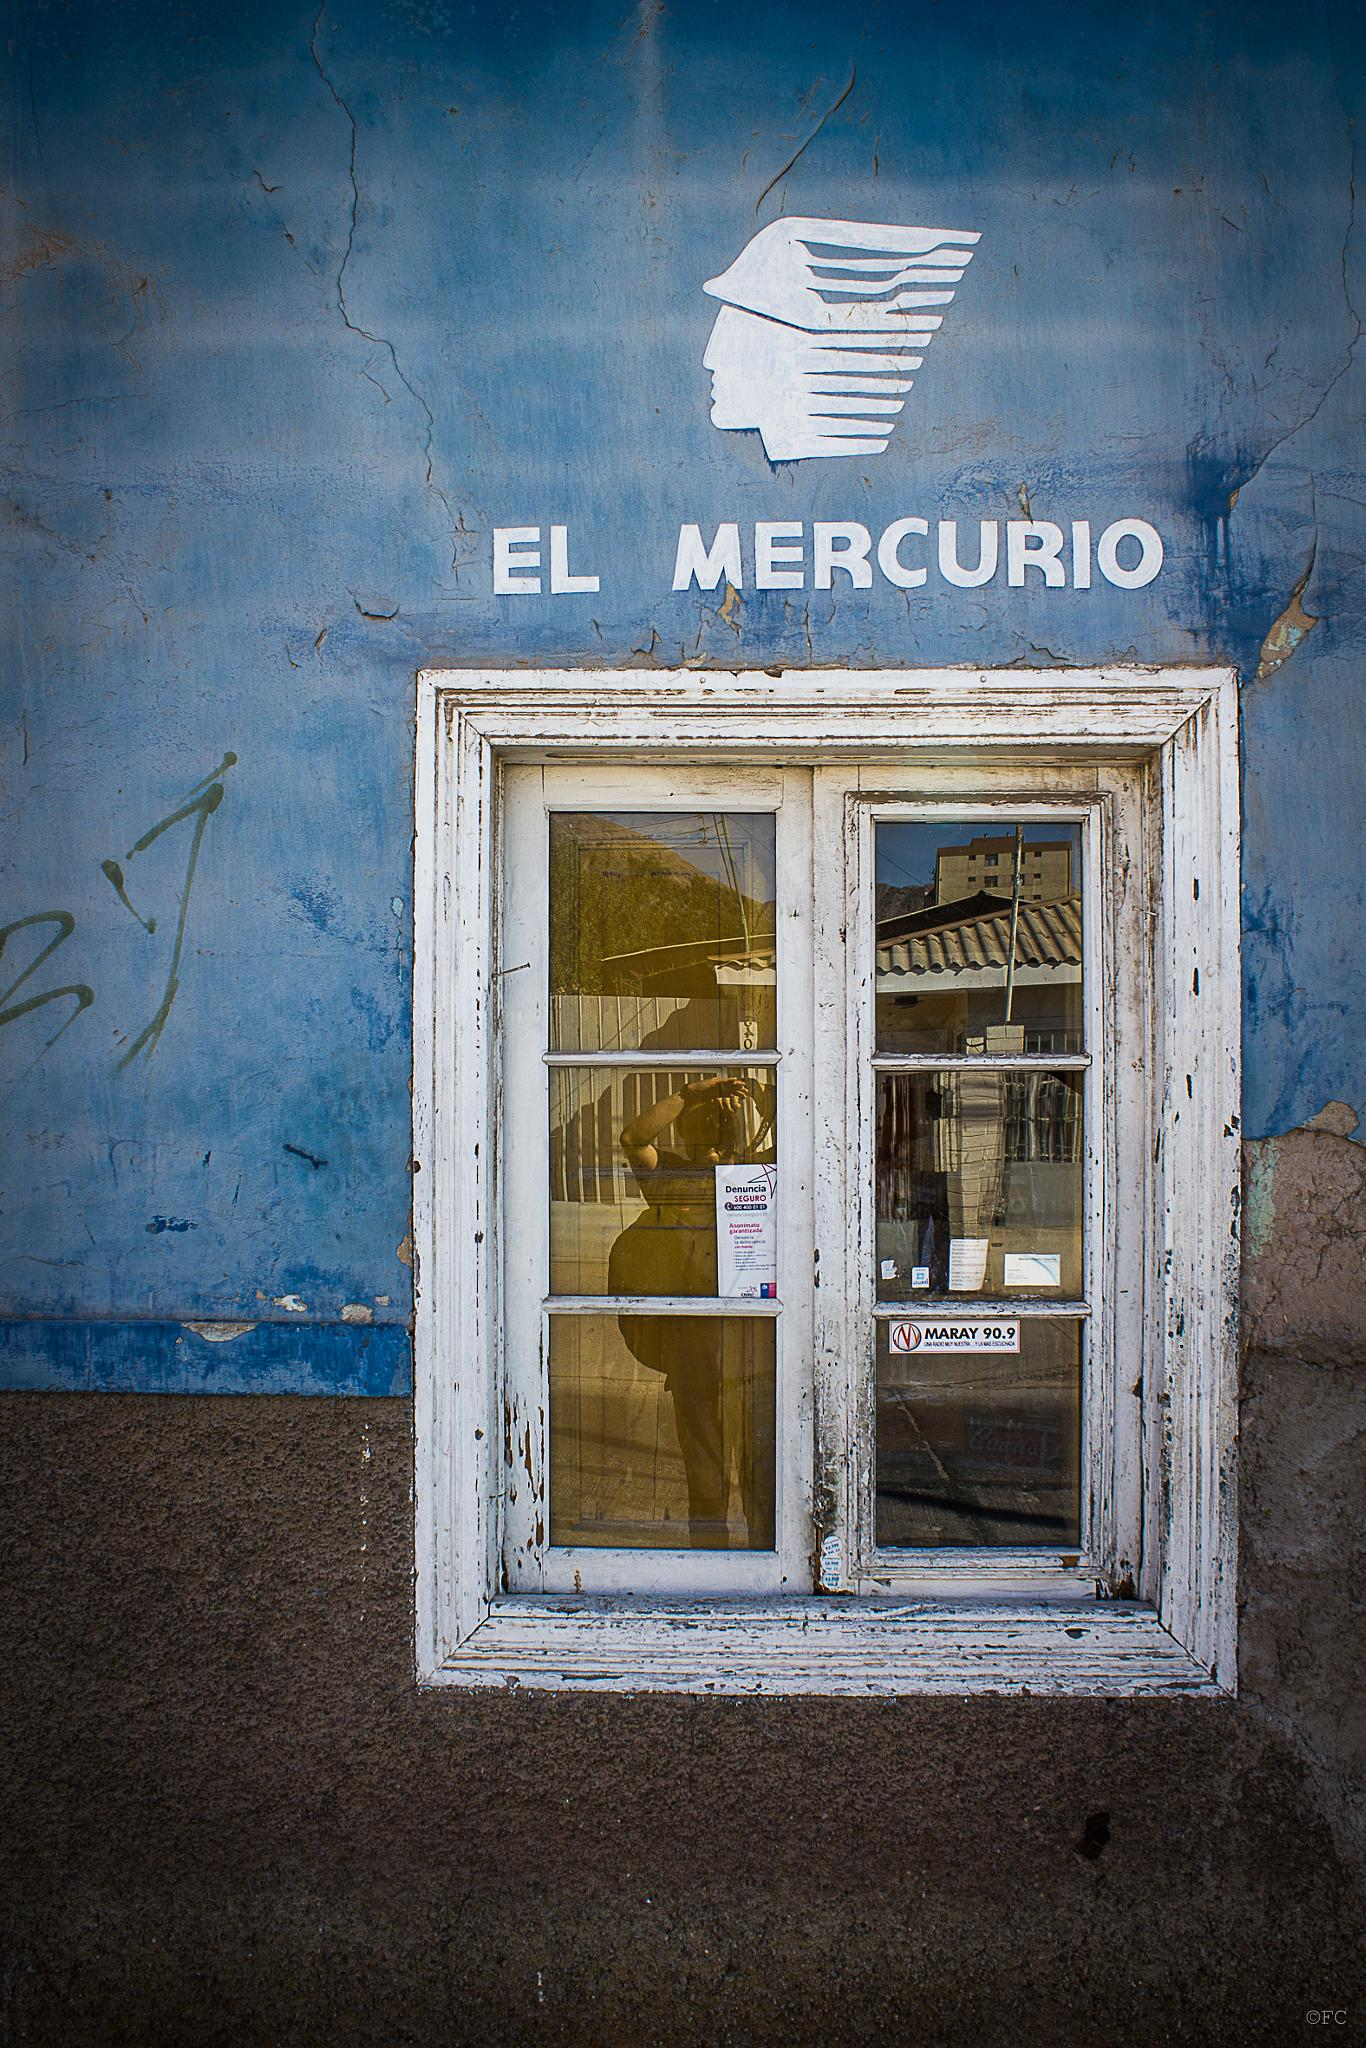 El Mercurio by FlaviuCodorean